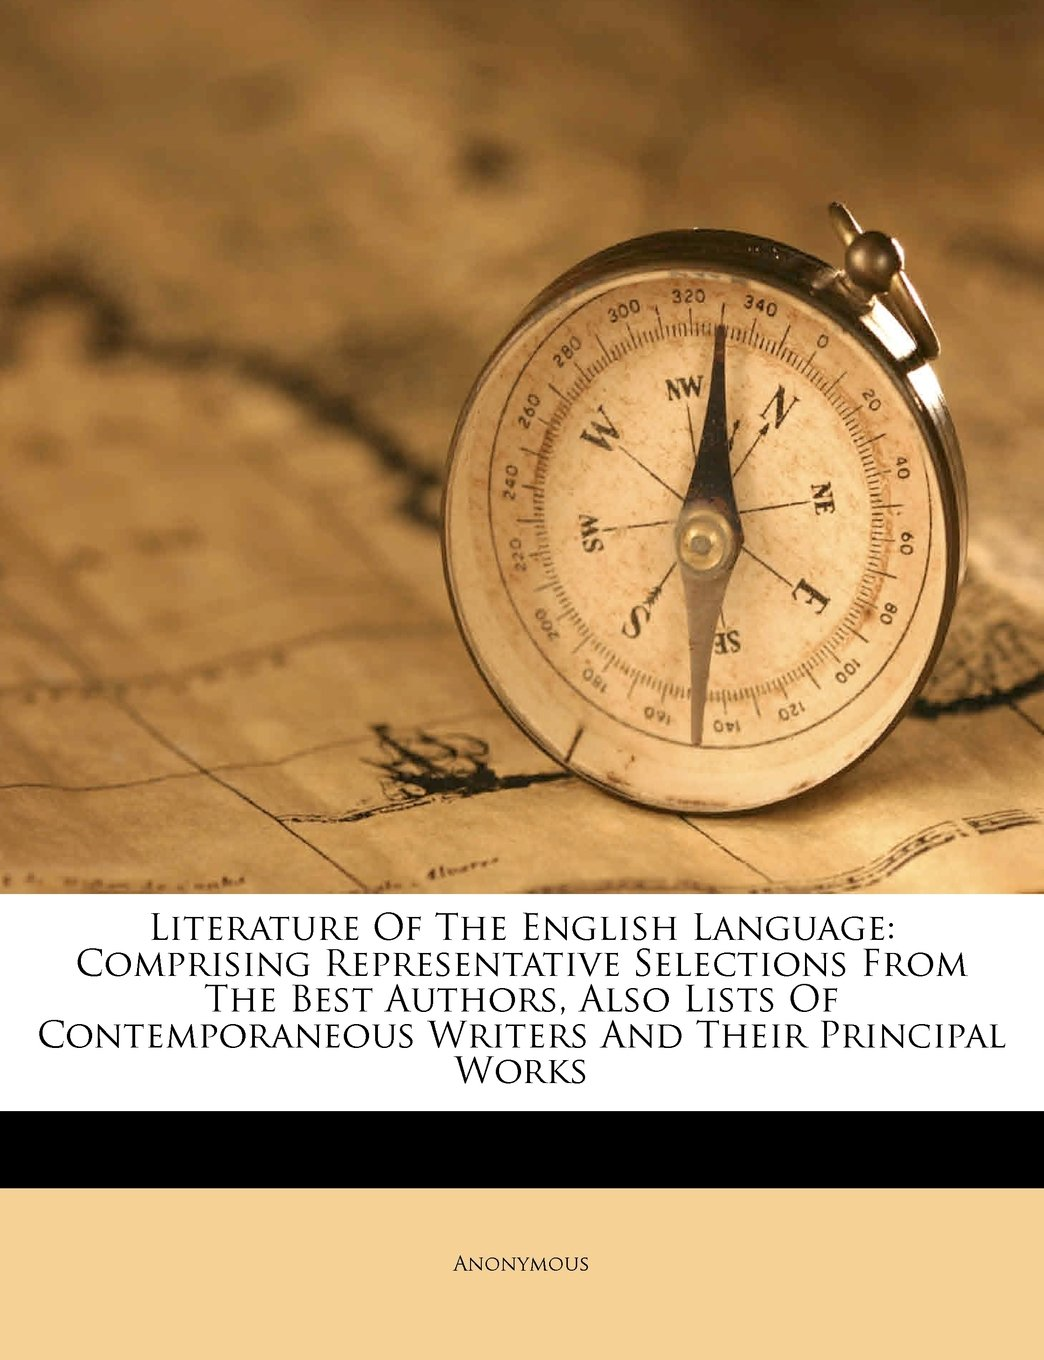 Literature Of The English Language: Comprising Representative Selections From The Best Authors, Also Lists Of Contemporaneous Writers And Their Principal Works pdf epub